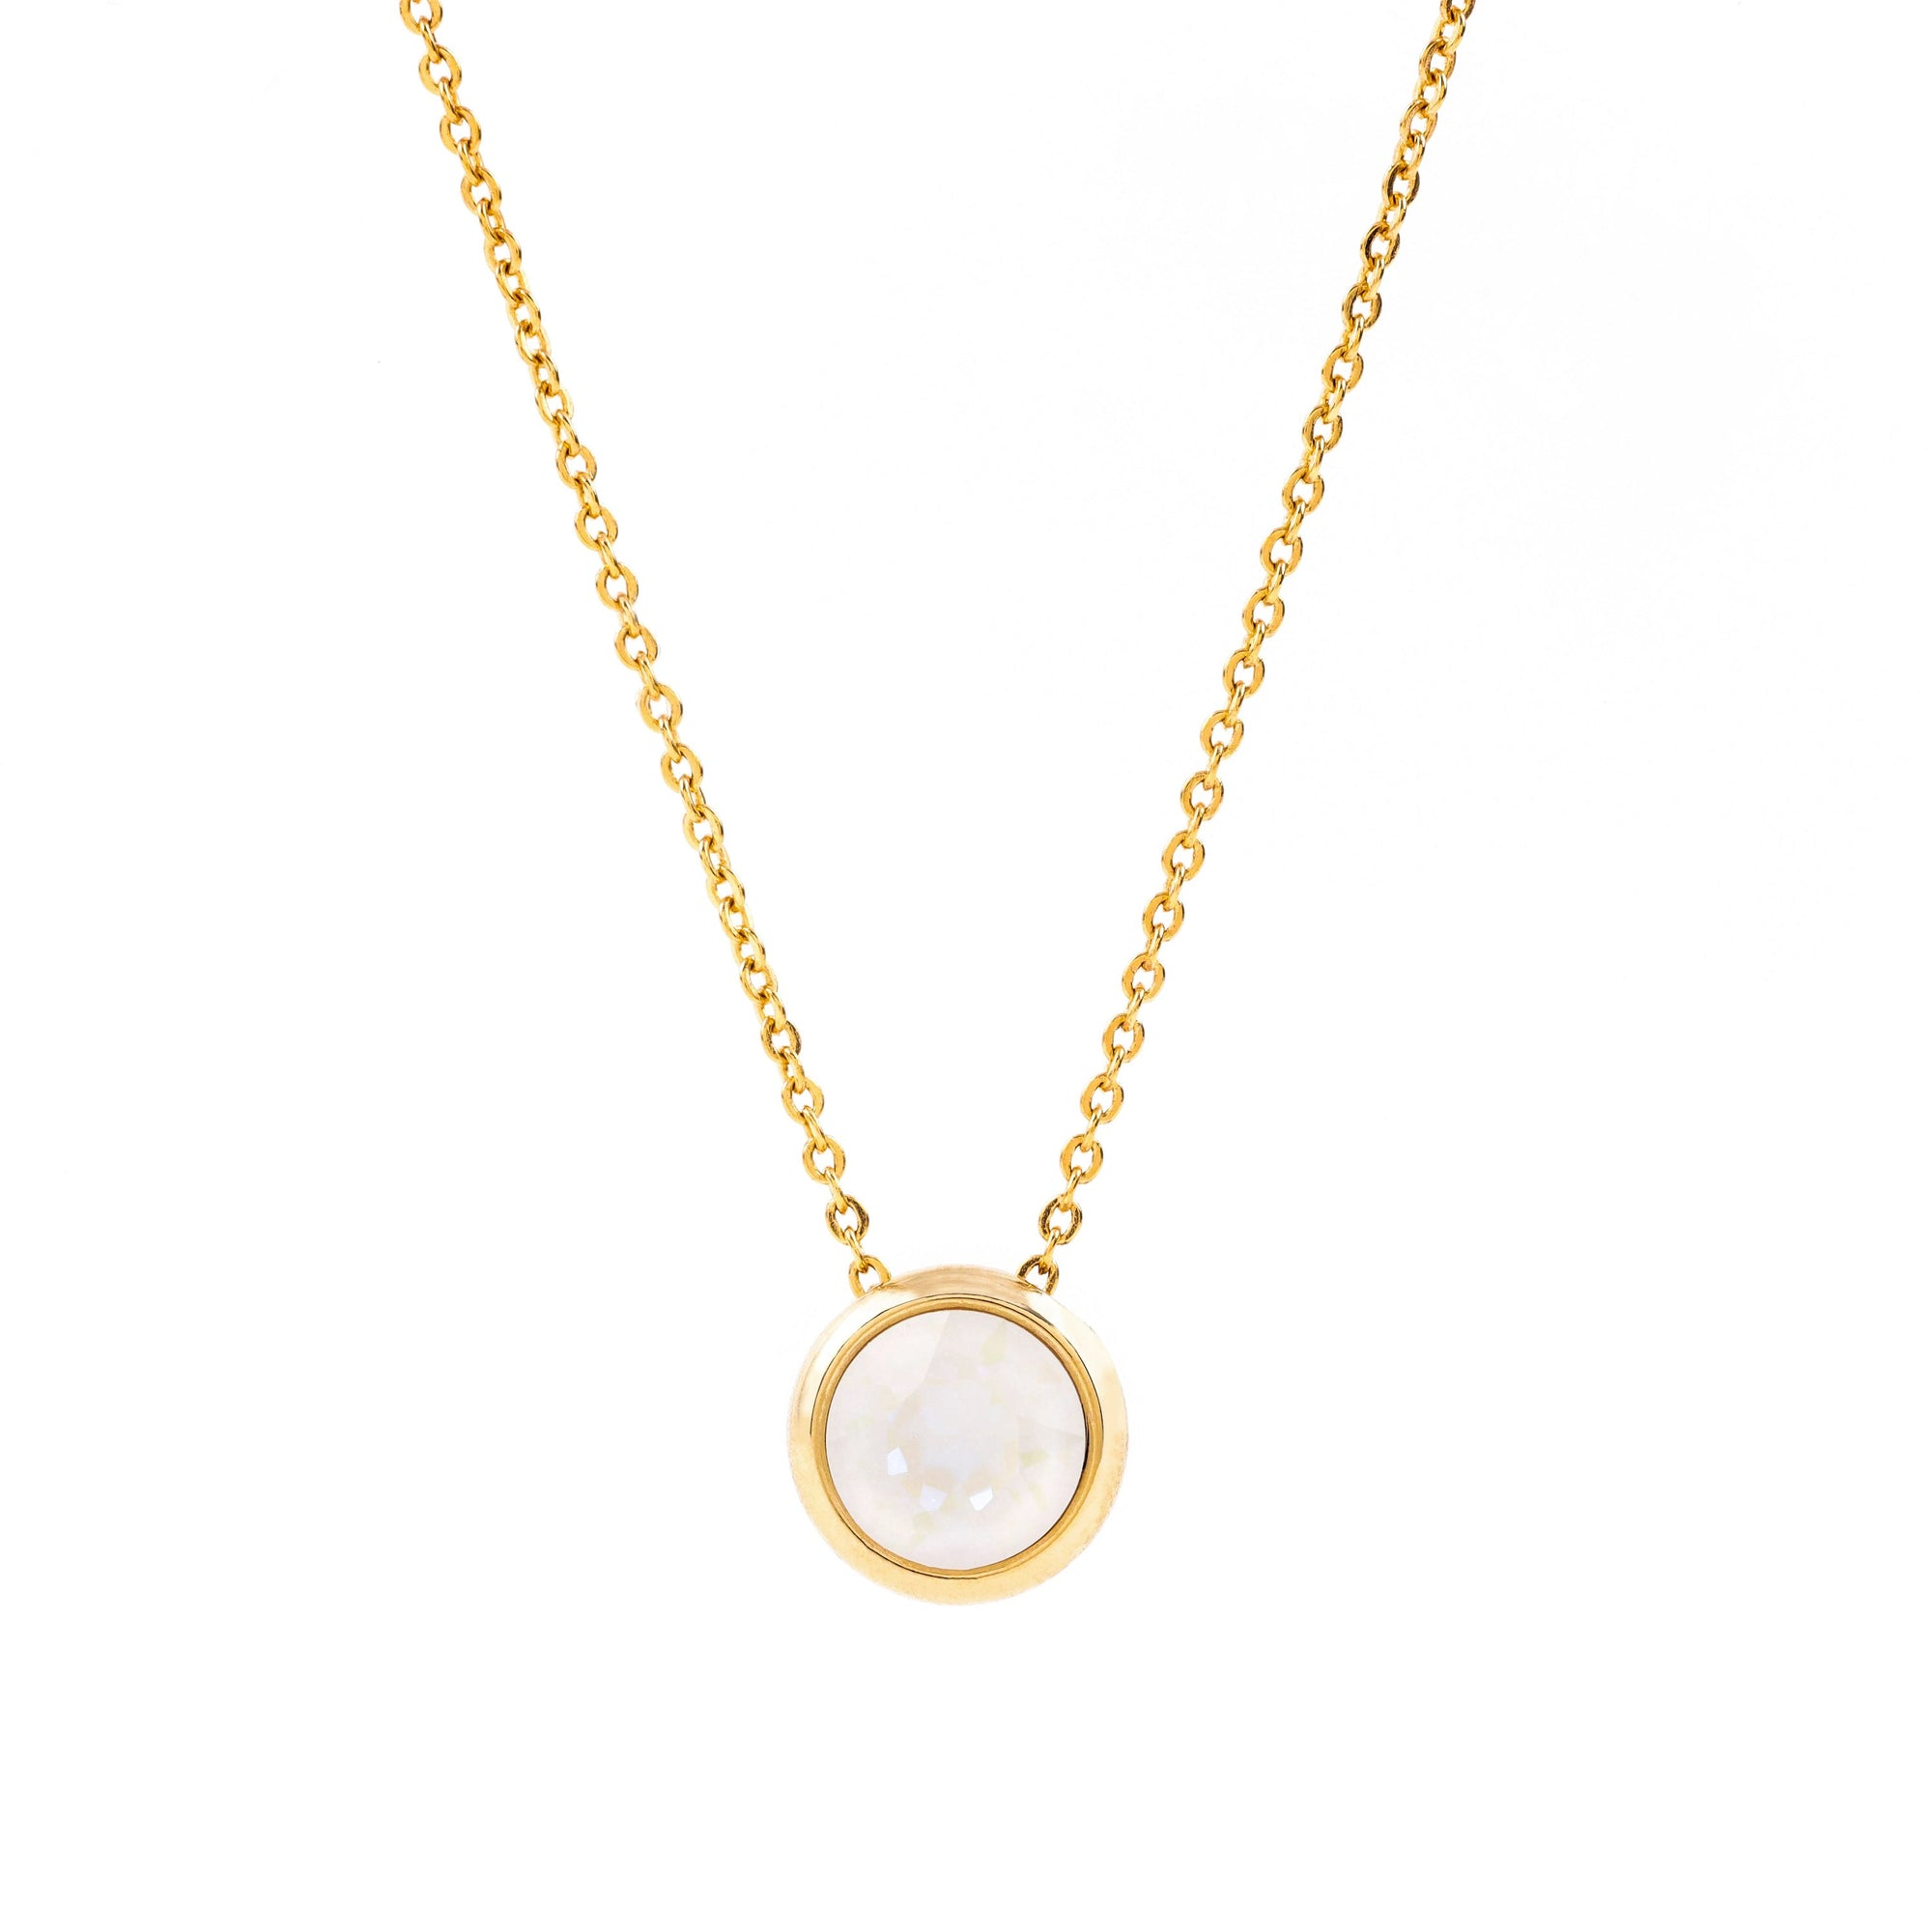 GRACE NECKLACE GOLD LIGHT GREY DELITE NECKLACE - IMPERIAL FOREVER